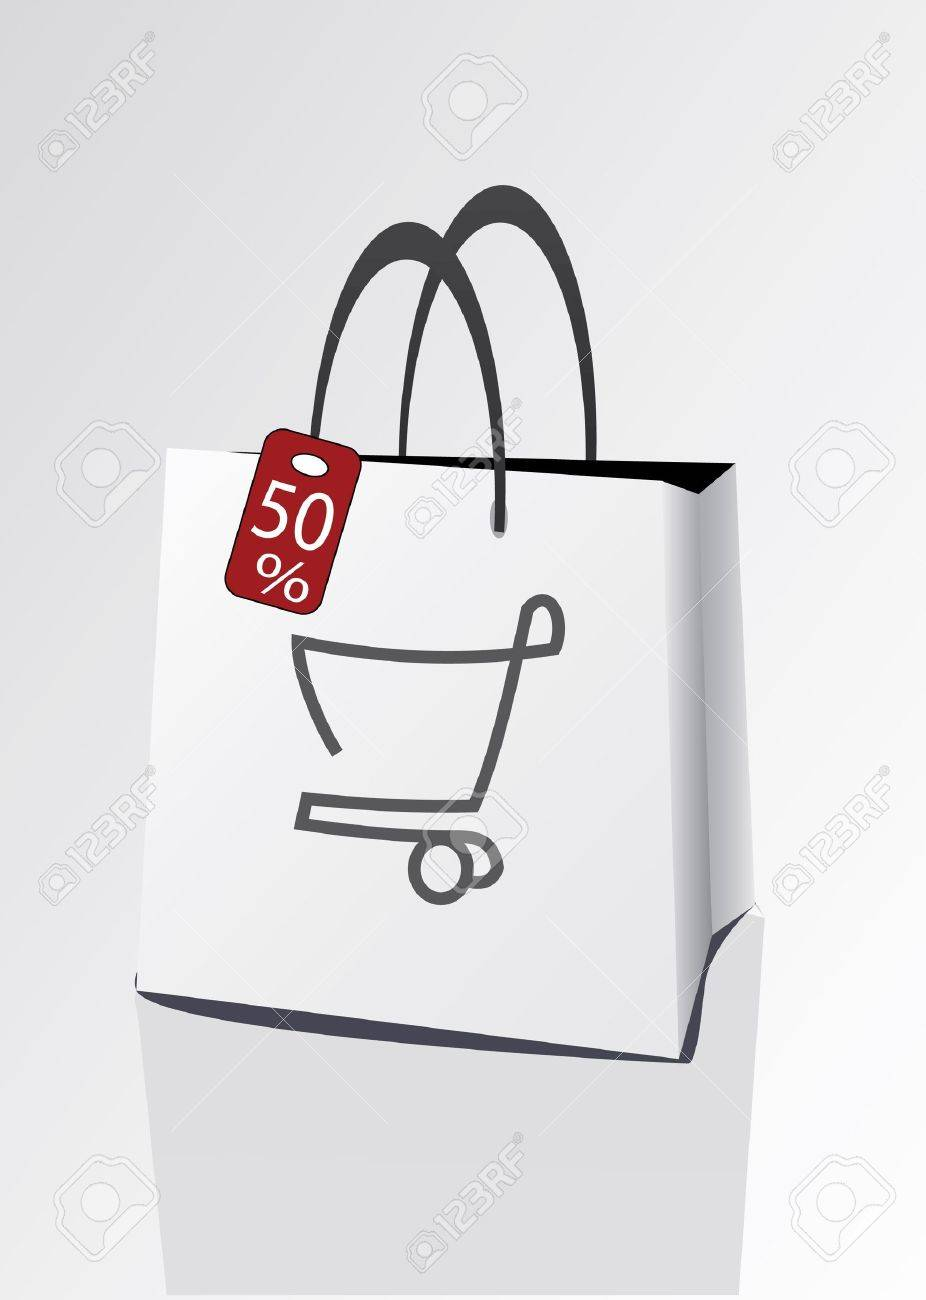 discount for shopping Stock Vector - 13342562